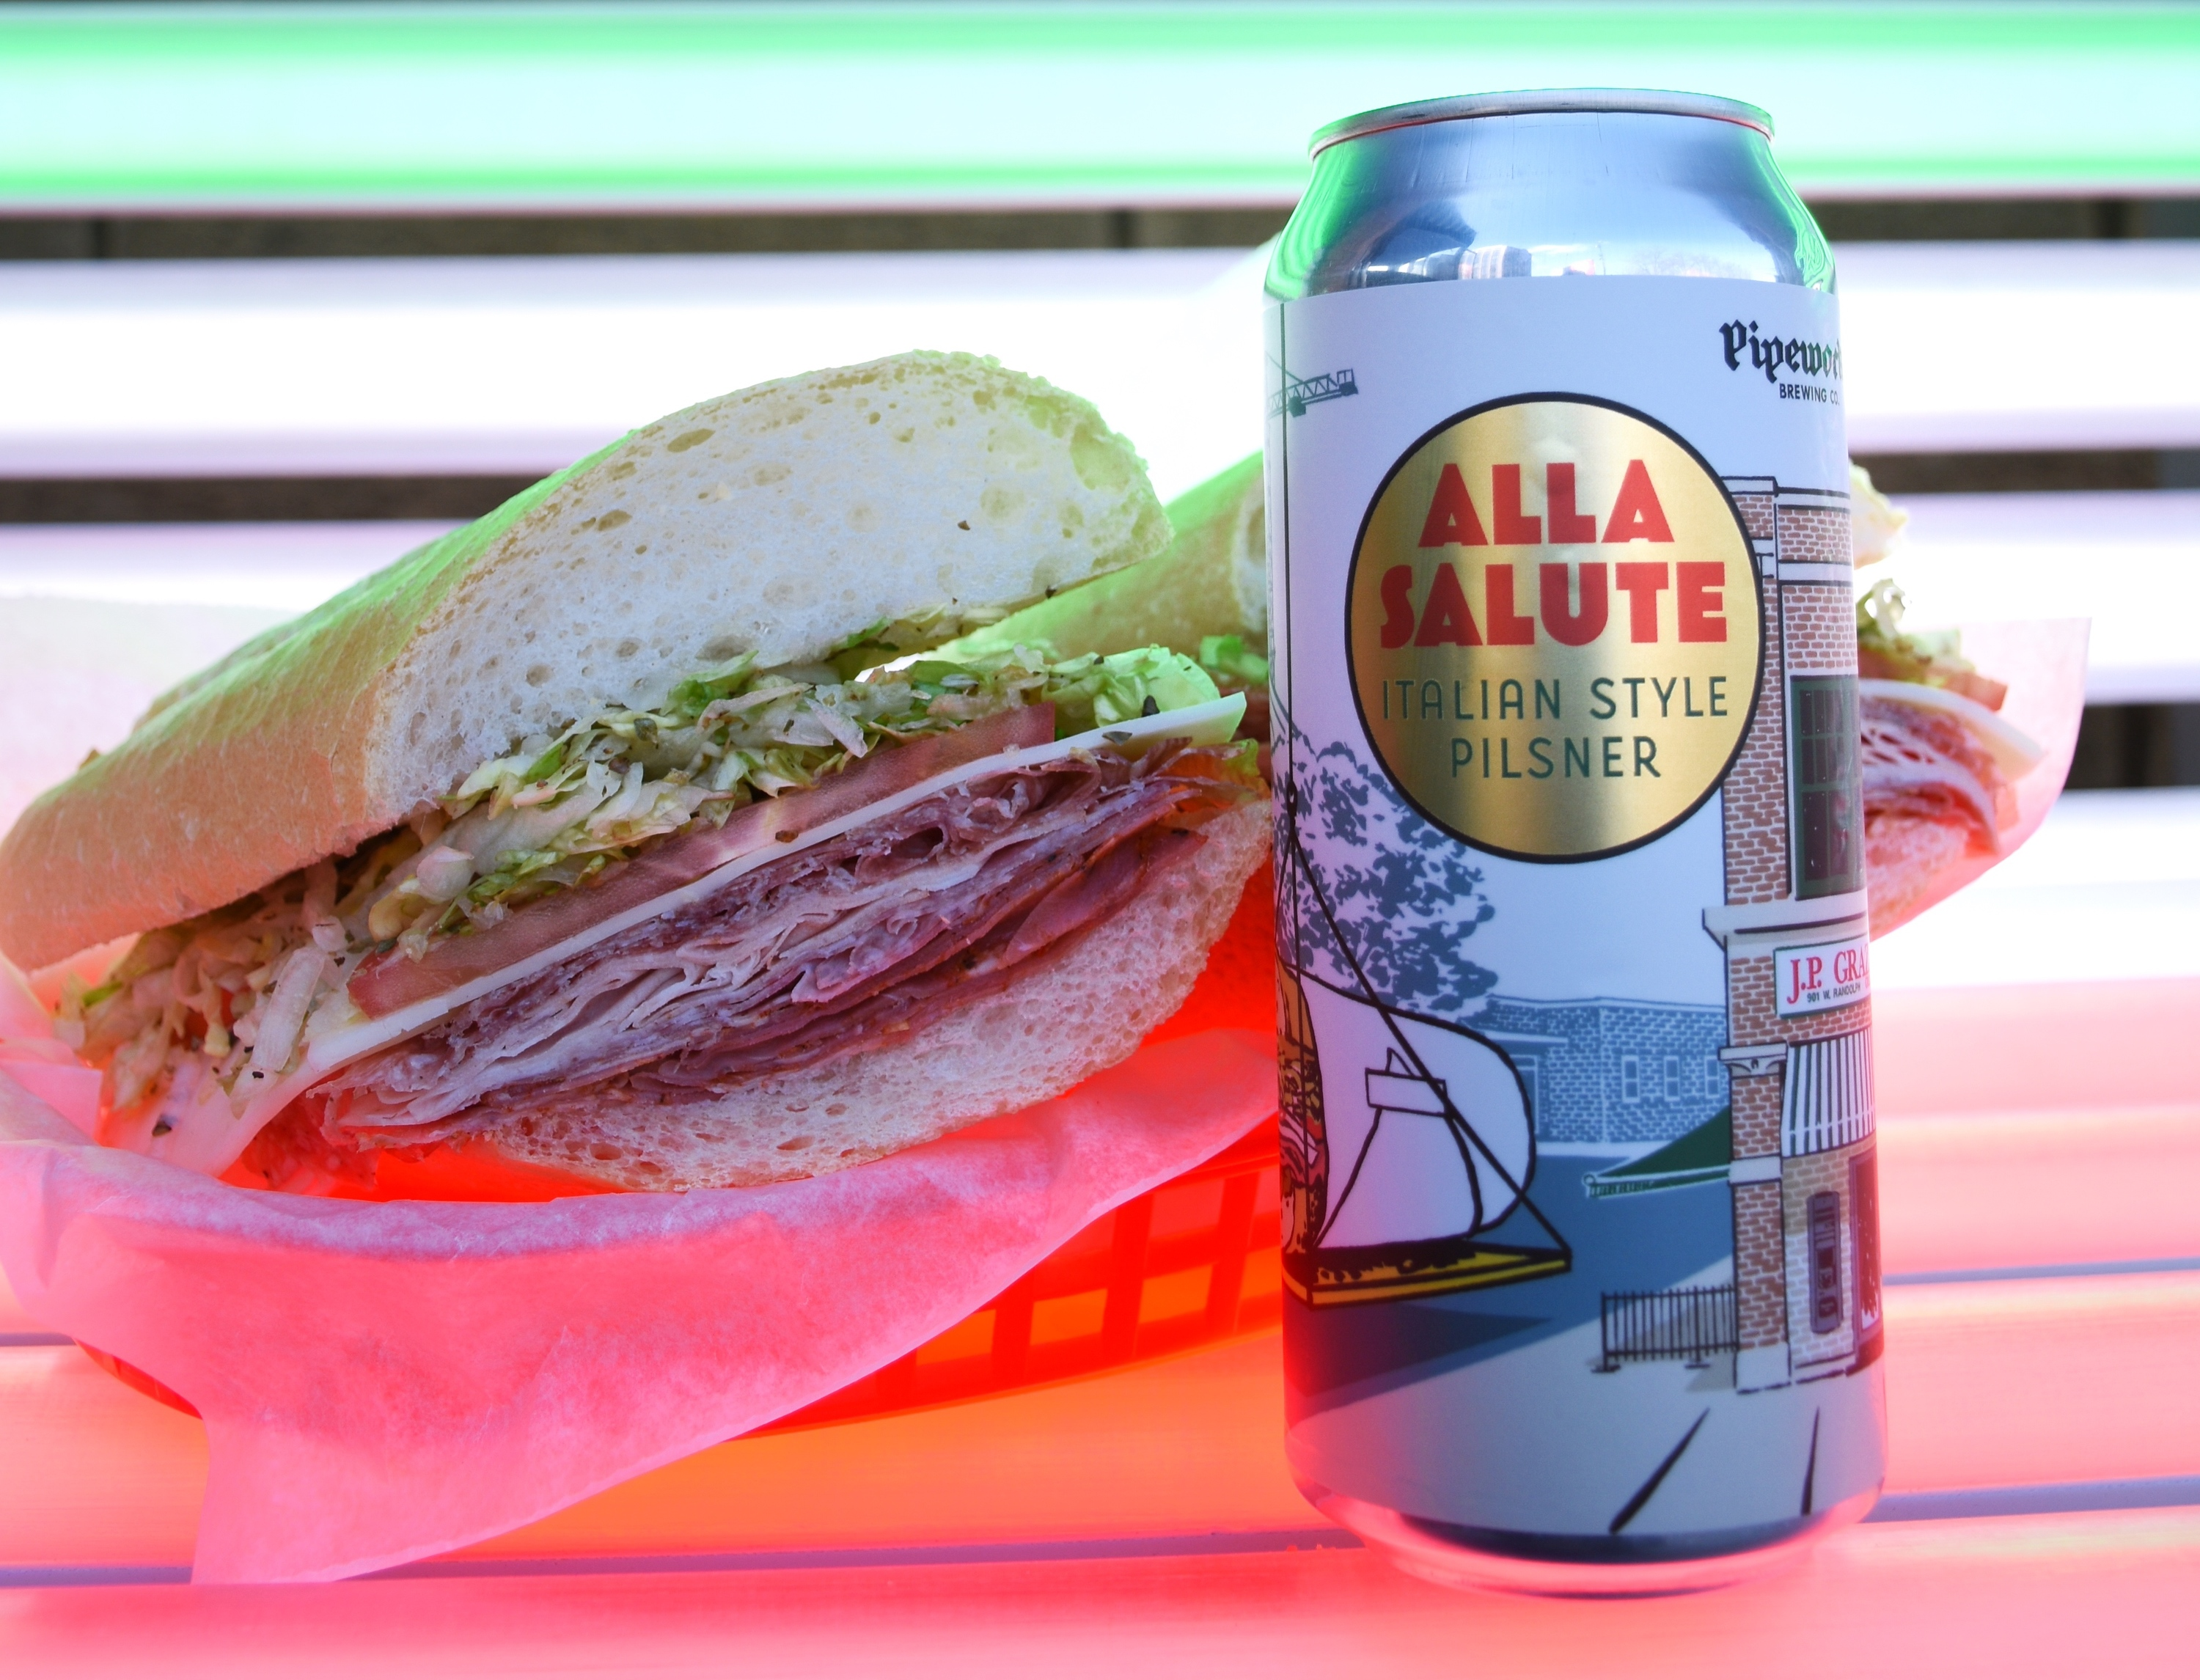 You can now snag the perfect beer to pair with your J.P. Graziano sub